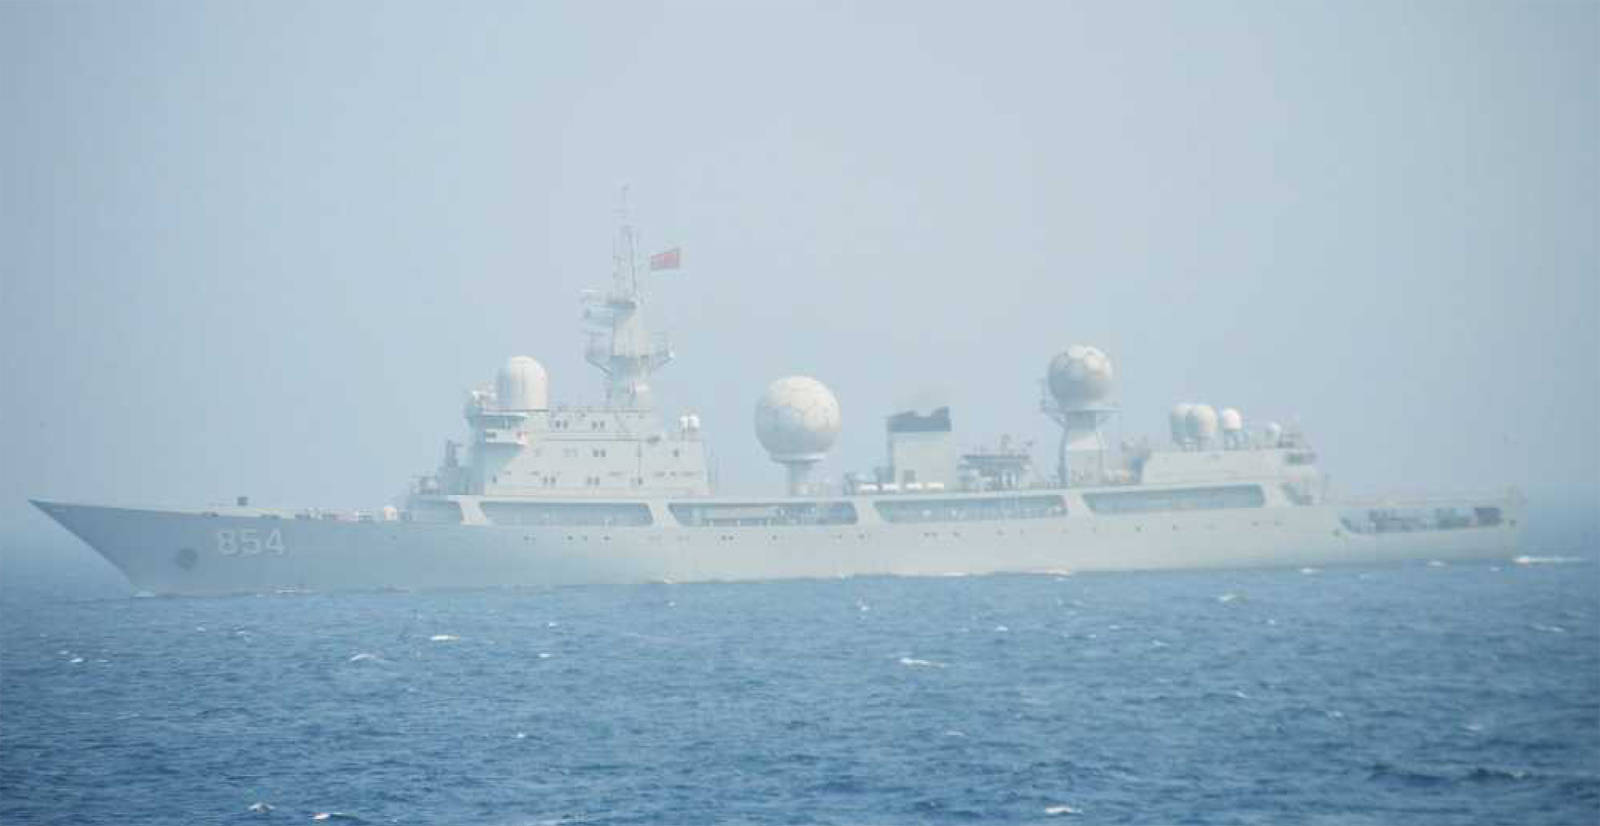 The Tianlangxing, a Chinese People's Liberation Army-Navy surveillance ship, passed by Japan on July 2, and stayed off the Kodiak coast during the July 11th test of a U.S. missile defense system. (Courtesy Japanese Ministry of Defense)